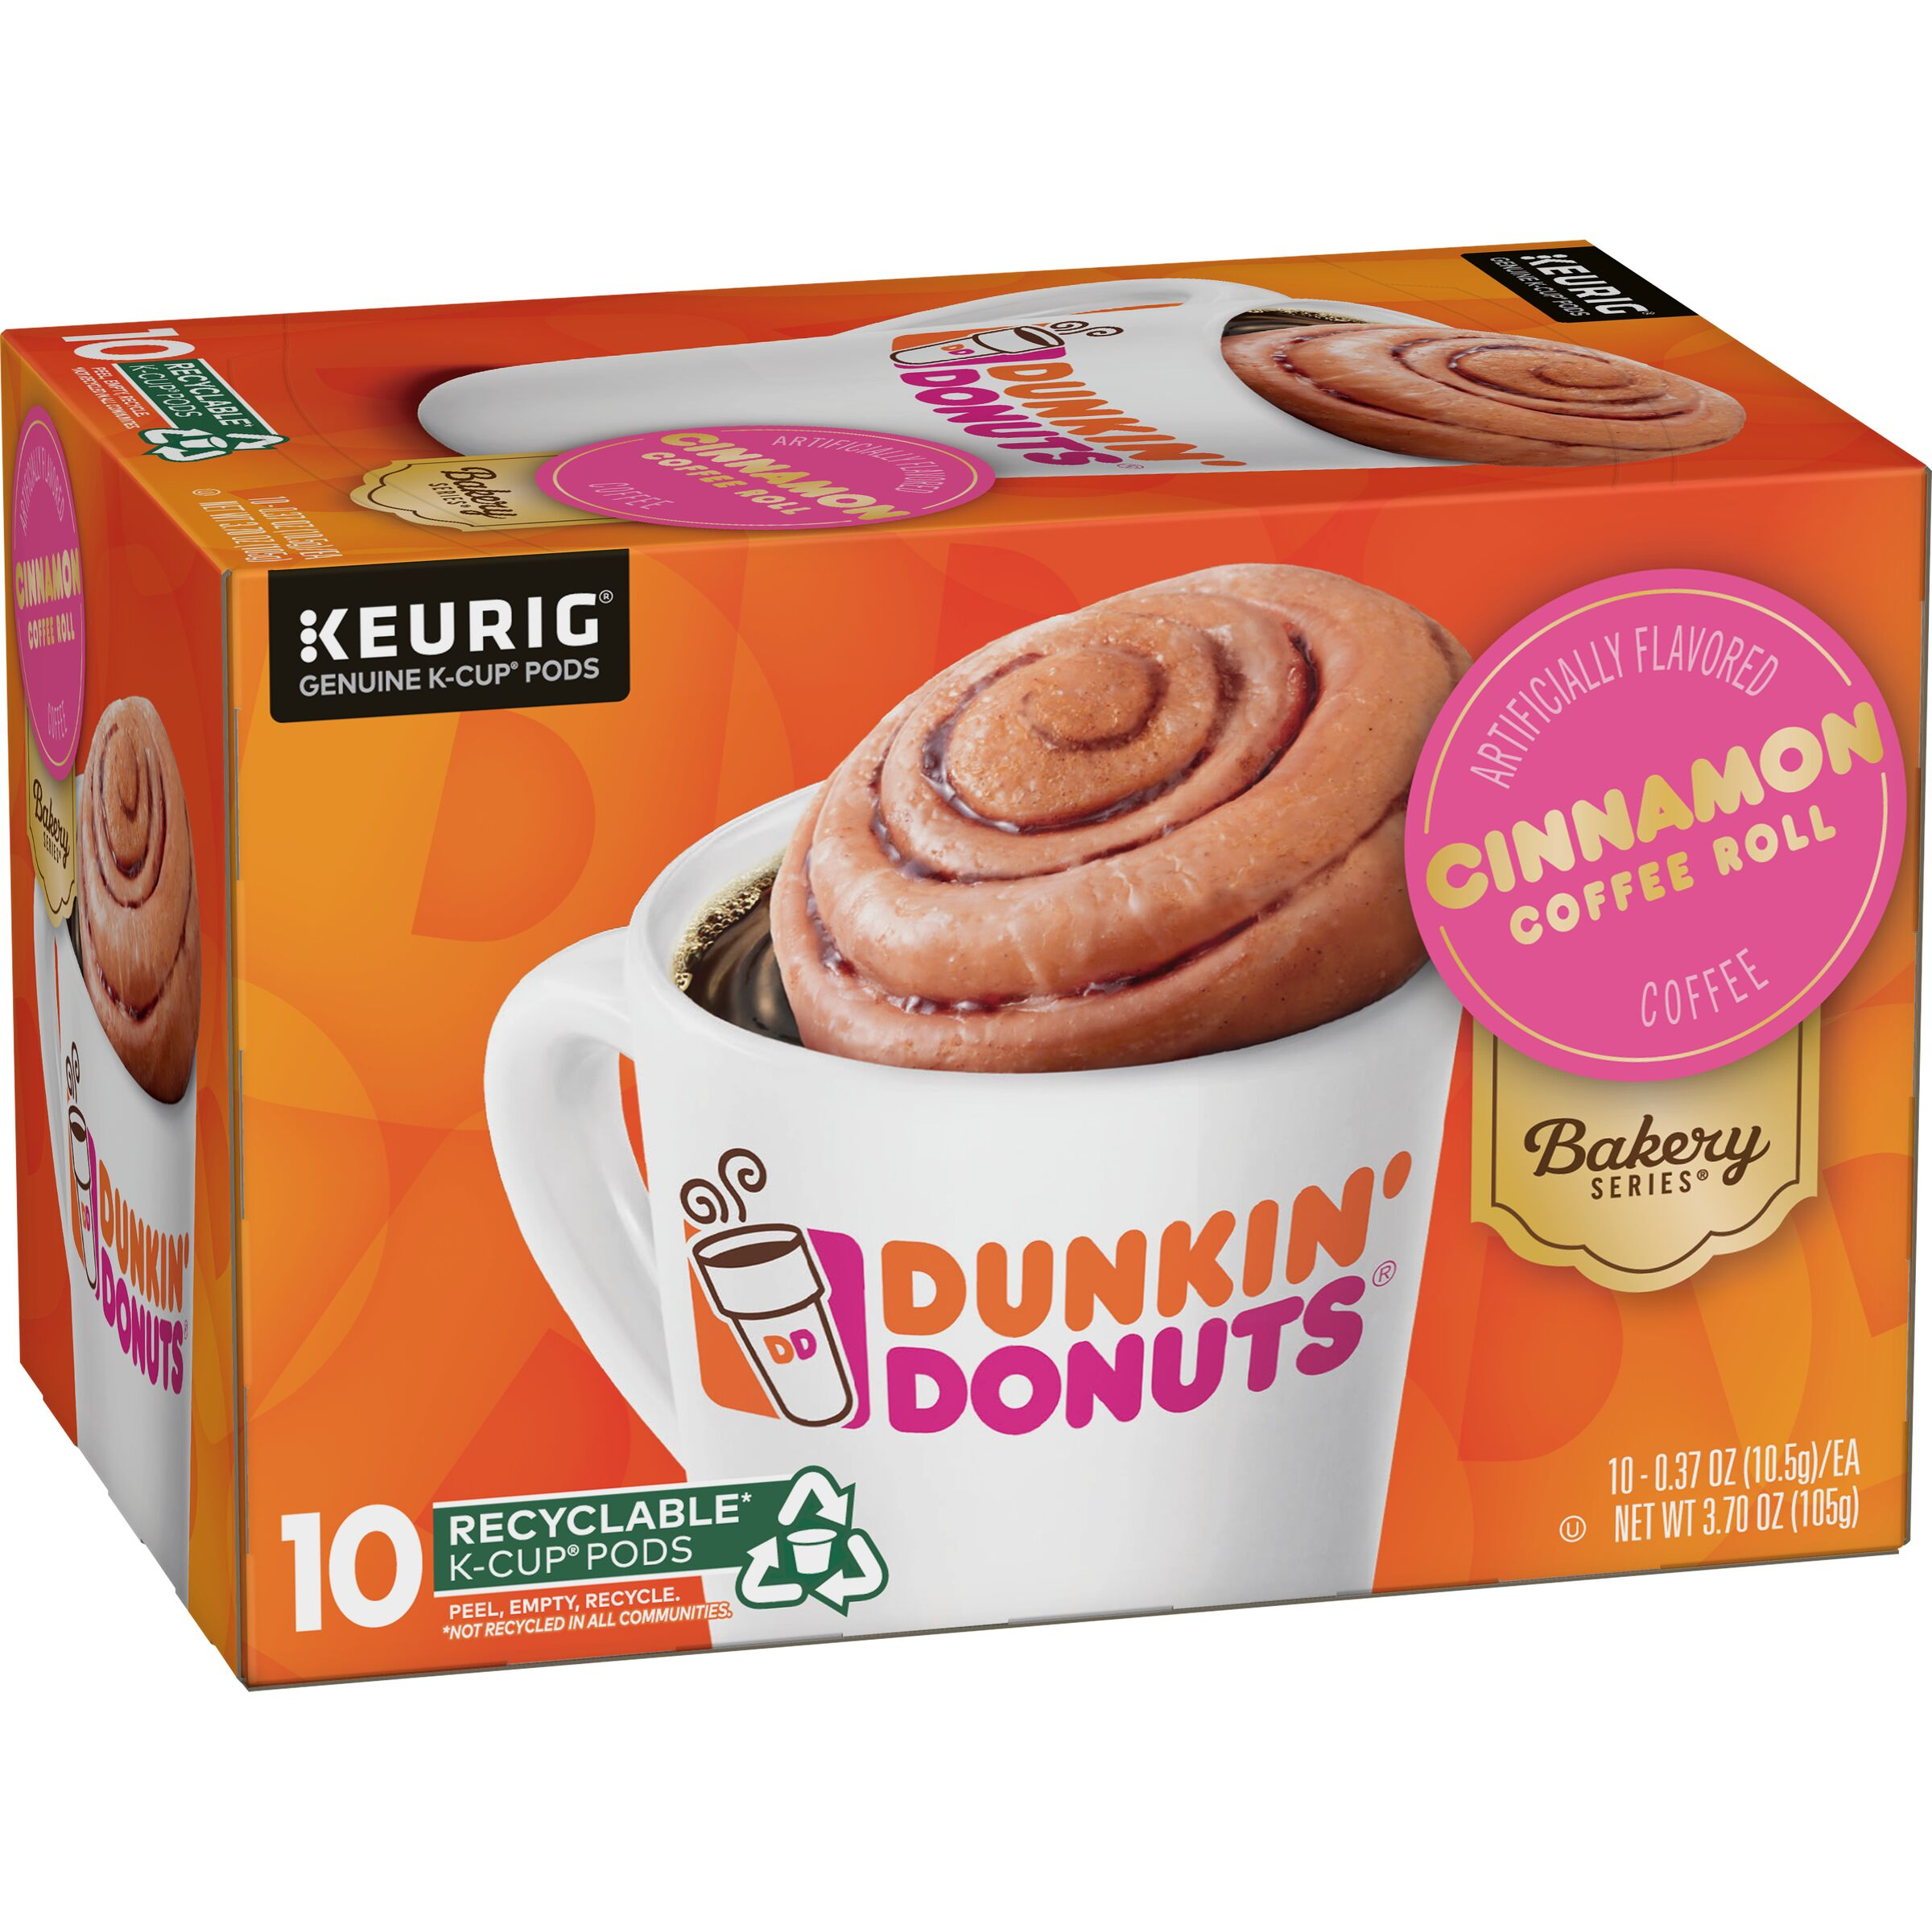 Dunkin' Donuts  Bakery Series® Cinnamon Coffee Roll Flavored K-Cup® Pods, 10 Count